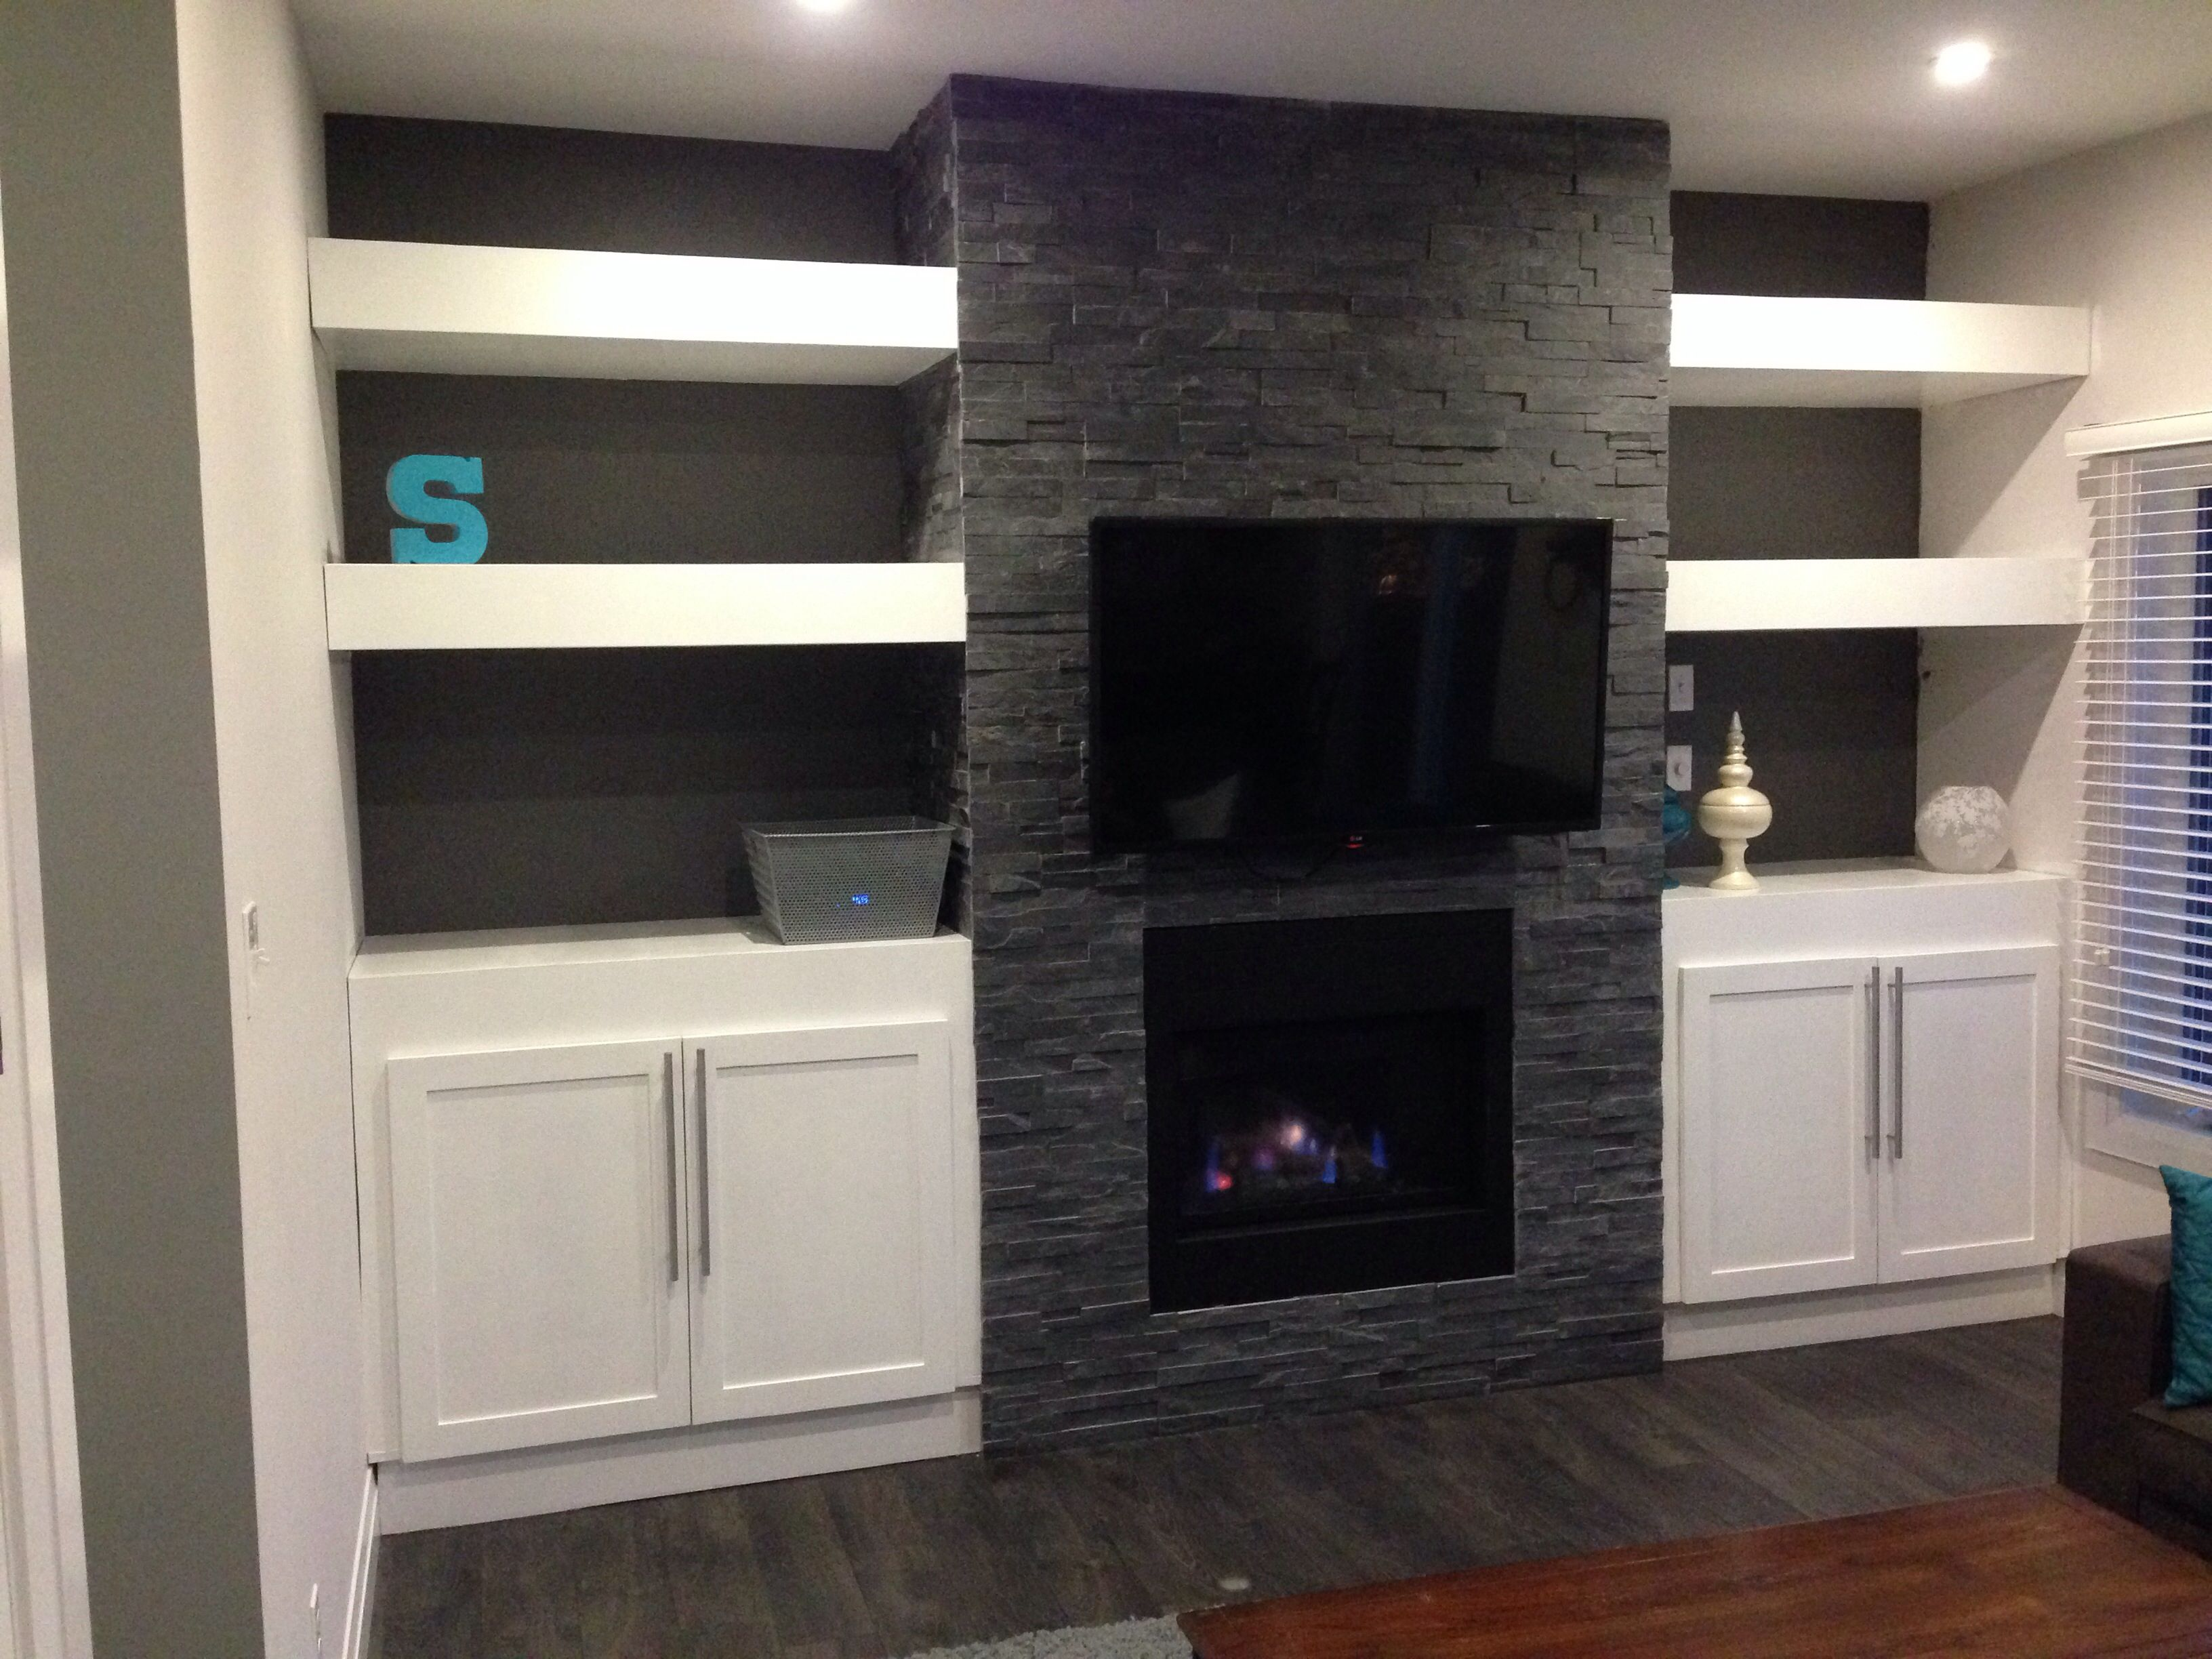 My Diy Stone Fireplace With Built In Cabinets And Floating